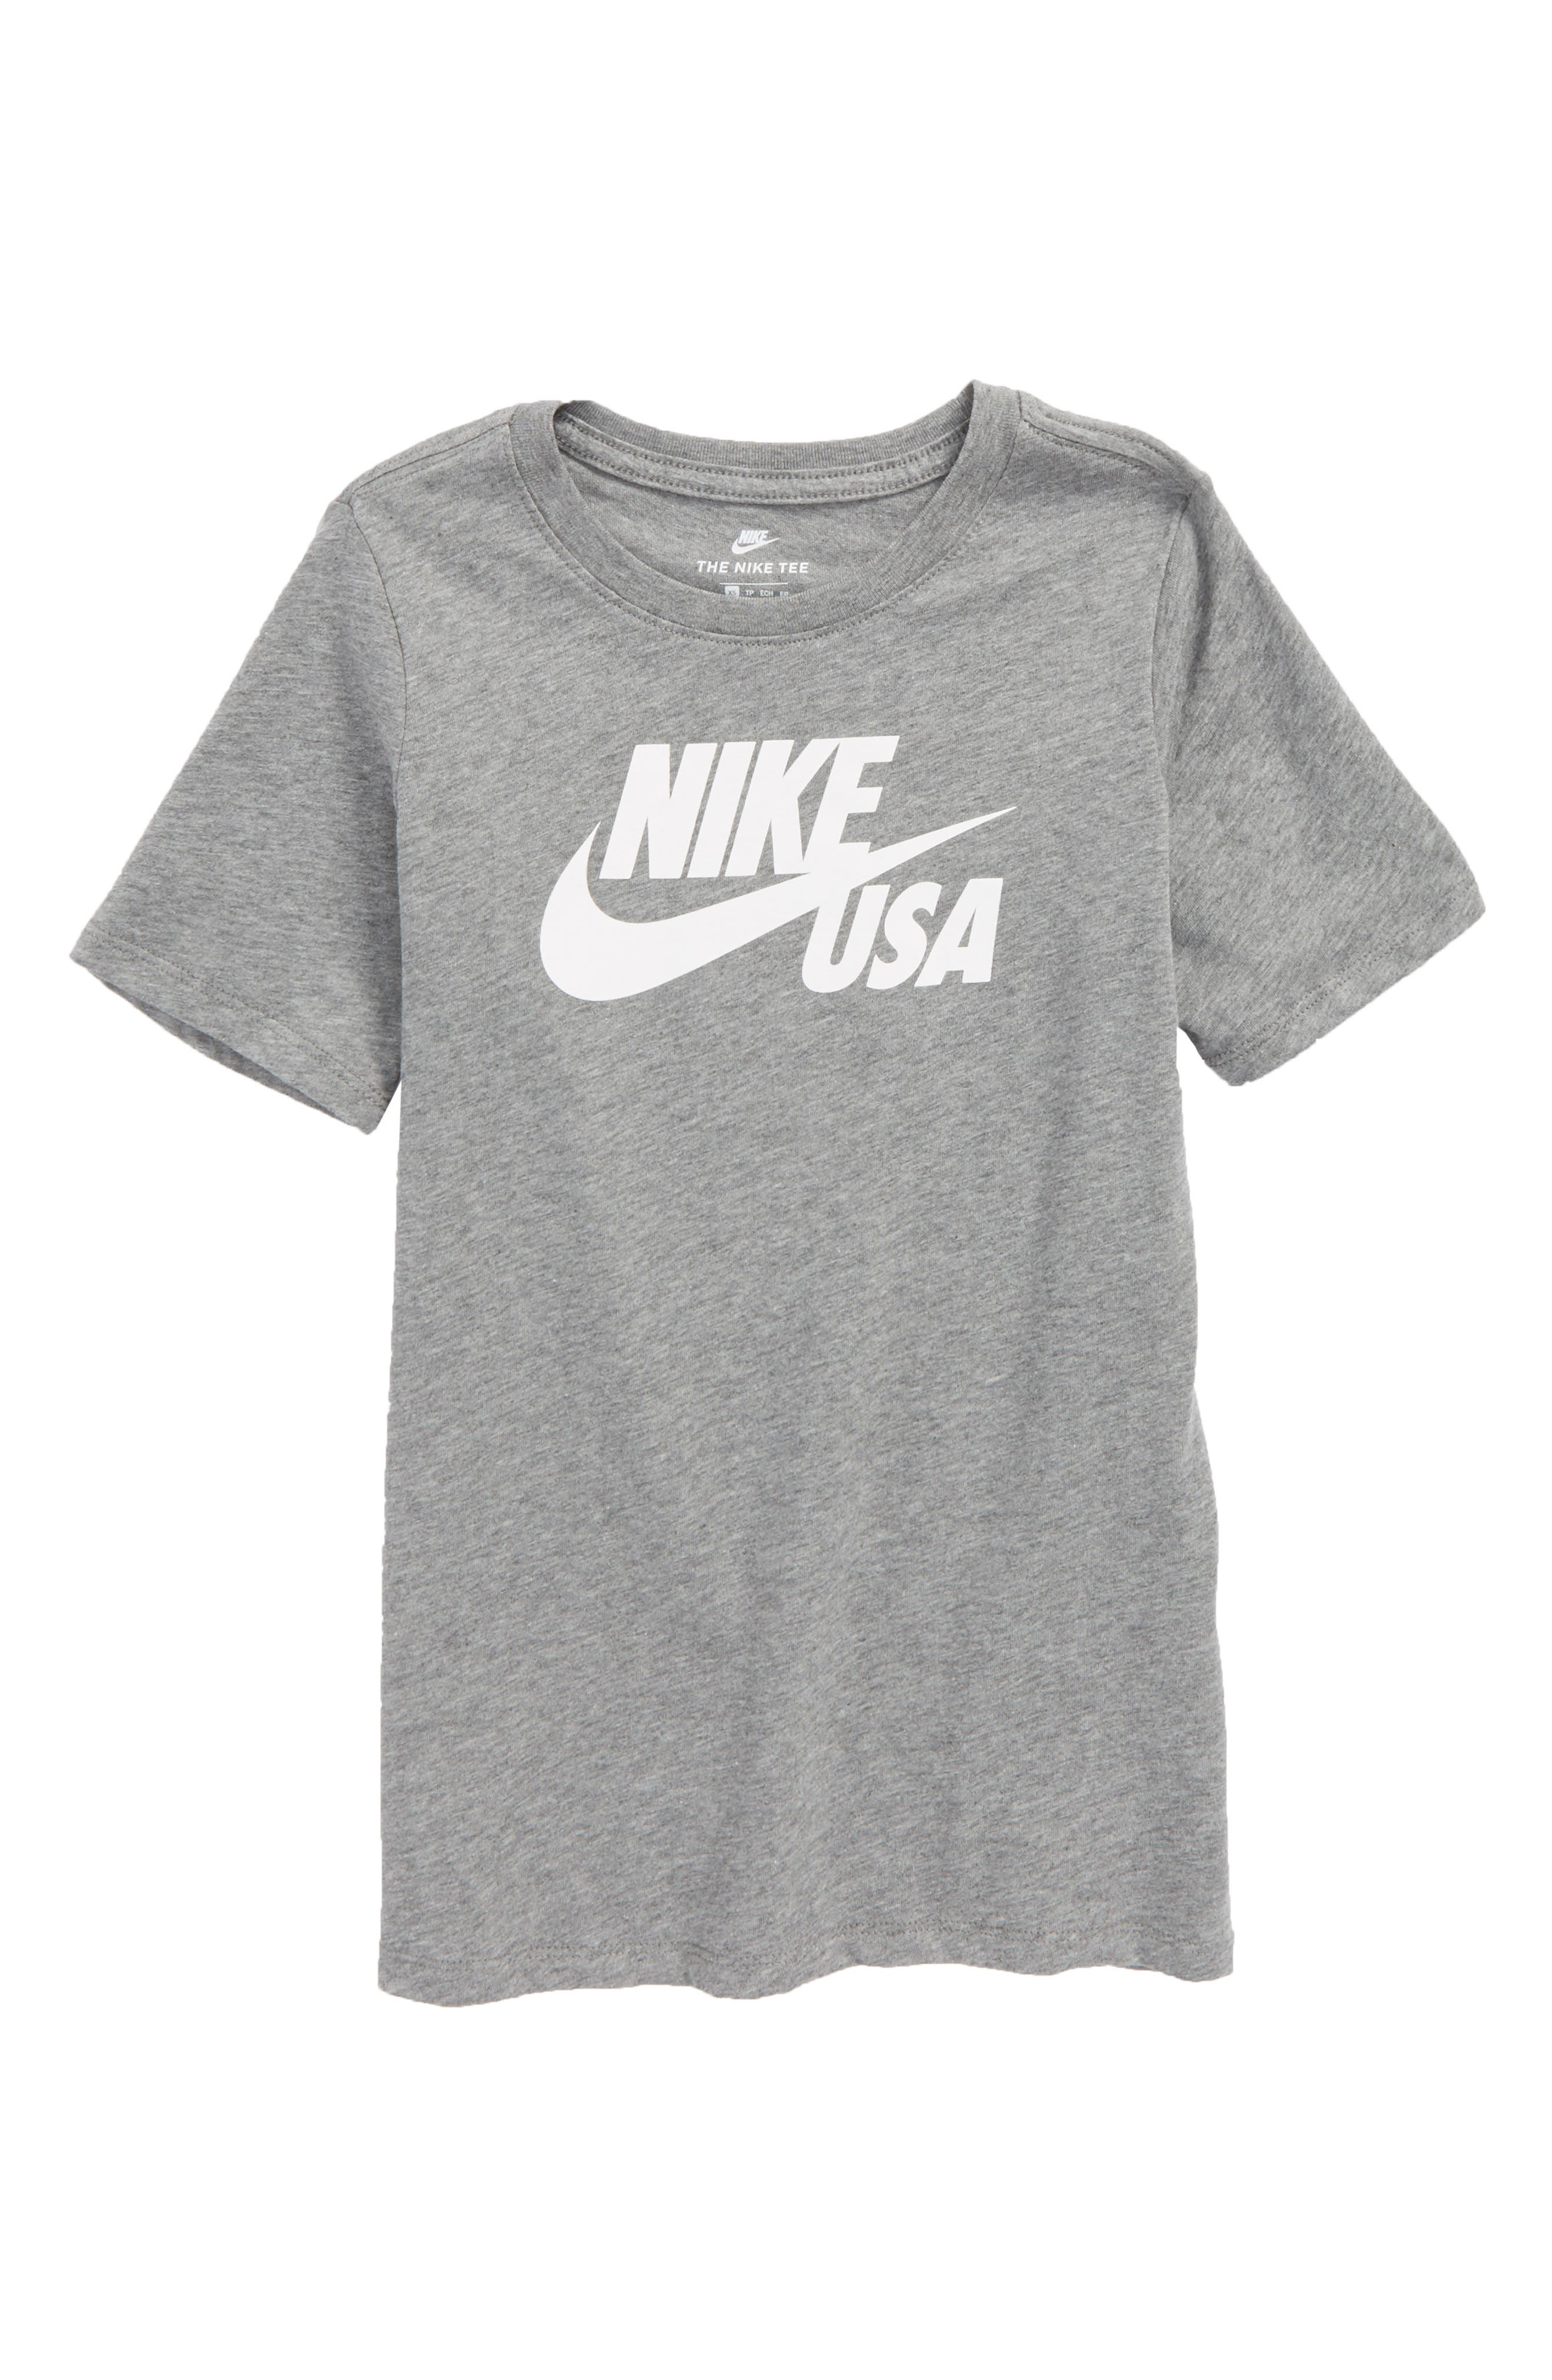 Sportswear USA Country Graphic T-Shirt,                         Main,                         color,